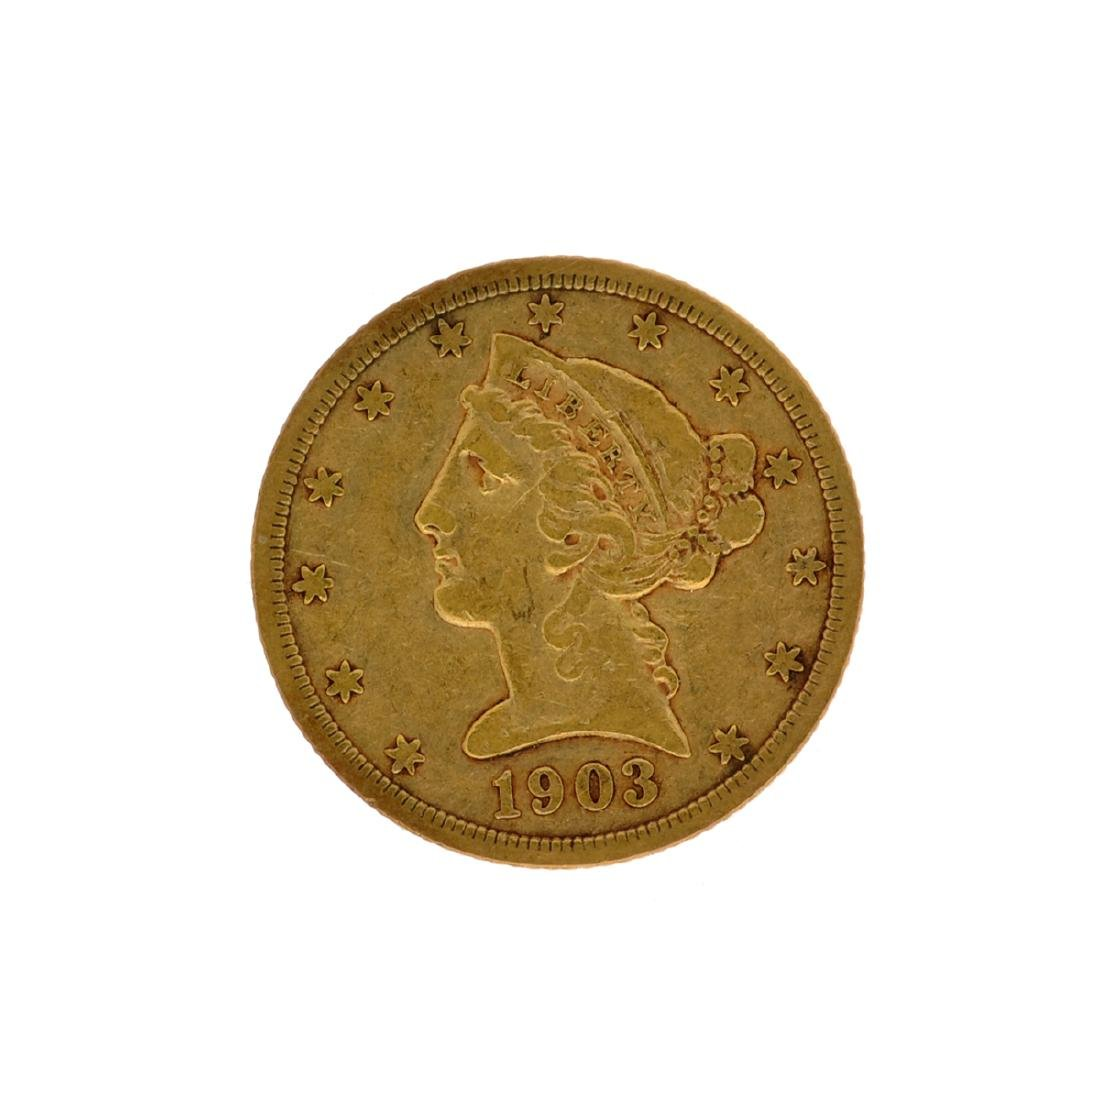 *1903-S $5 Liberty Head Gold Coin (DF)